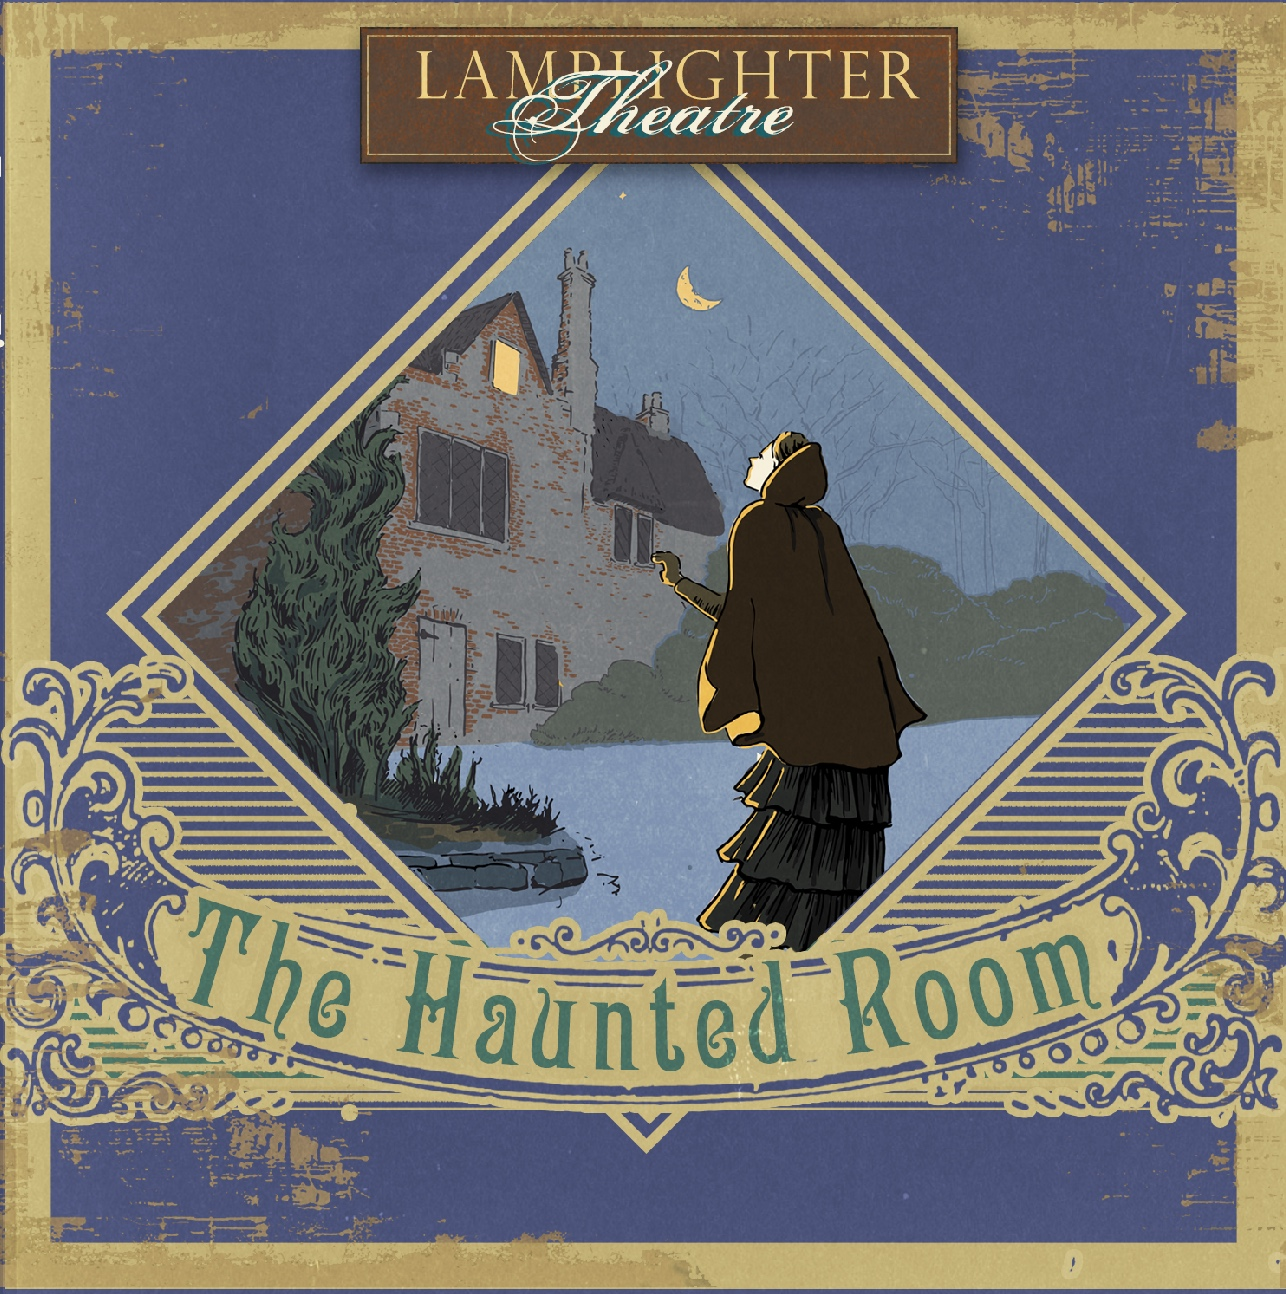 DA - The Haunted Room - Dramatic Audio MP3 Download